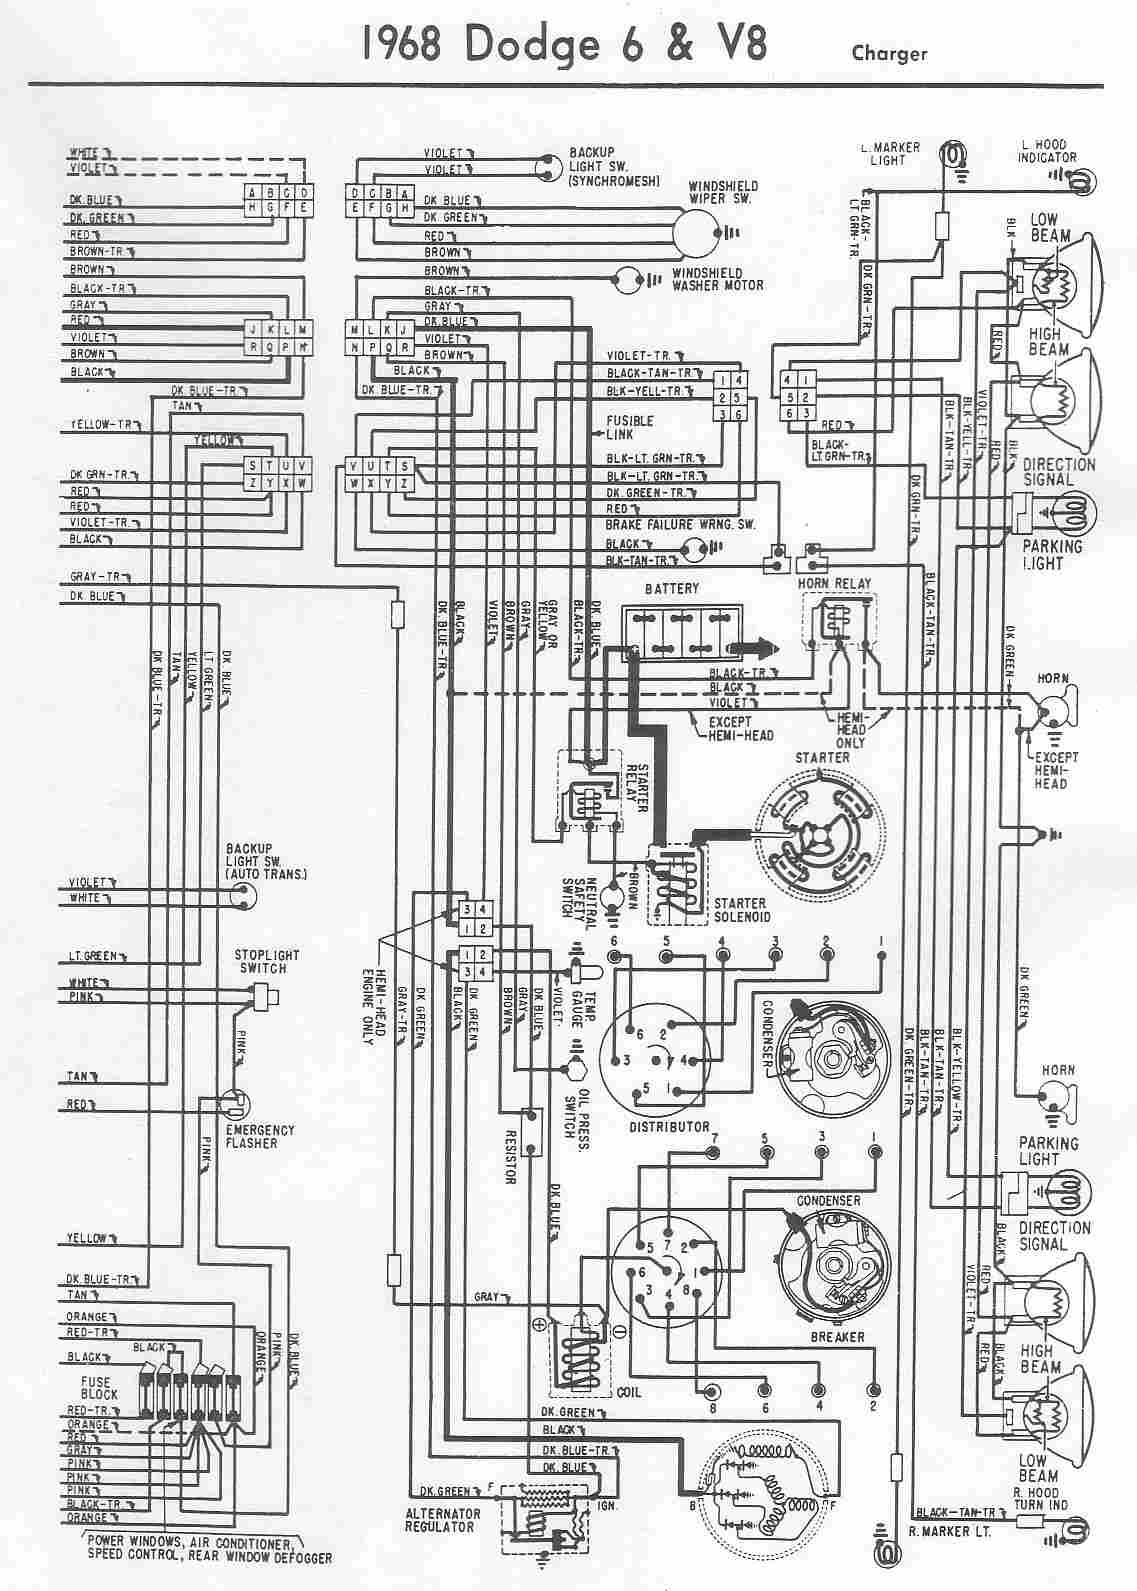 2010 dodge journey wiring diagram free picture car stereo wiring wiring diagram likewise uv10 wiring harness pic2fly jensen uv10 wiring [ 1137 x 1591 Pixel ]